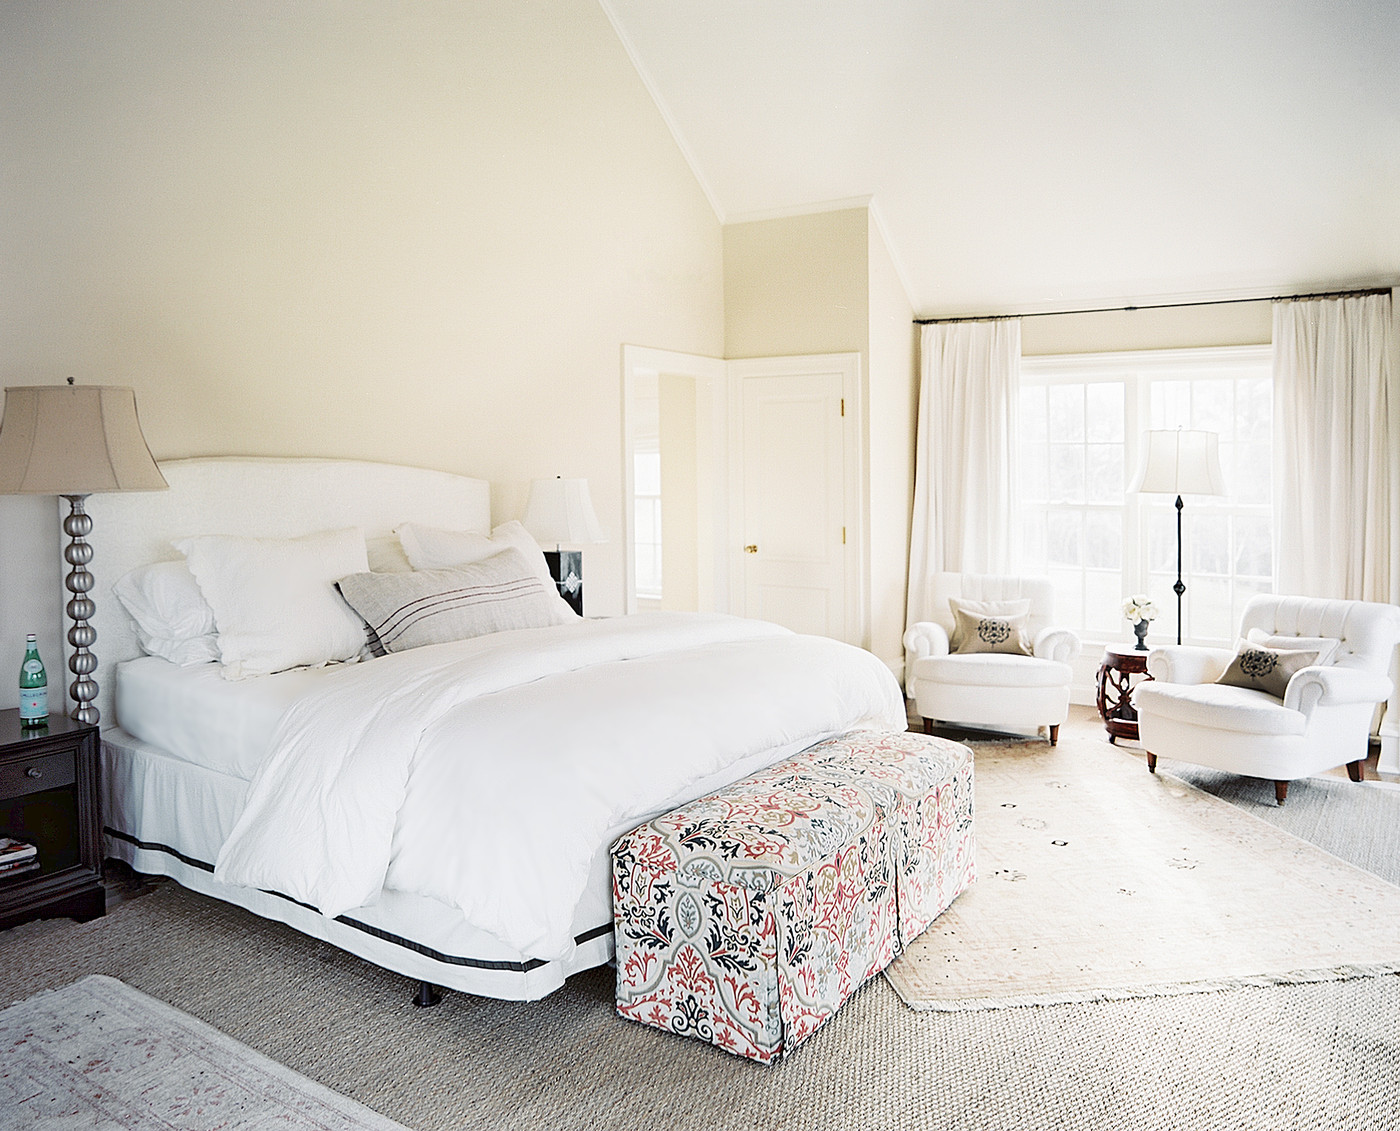 Foot Of The Bed foot of the bed photos, design, ideas, remodel, and decor